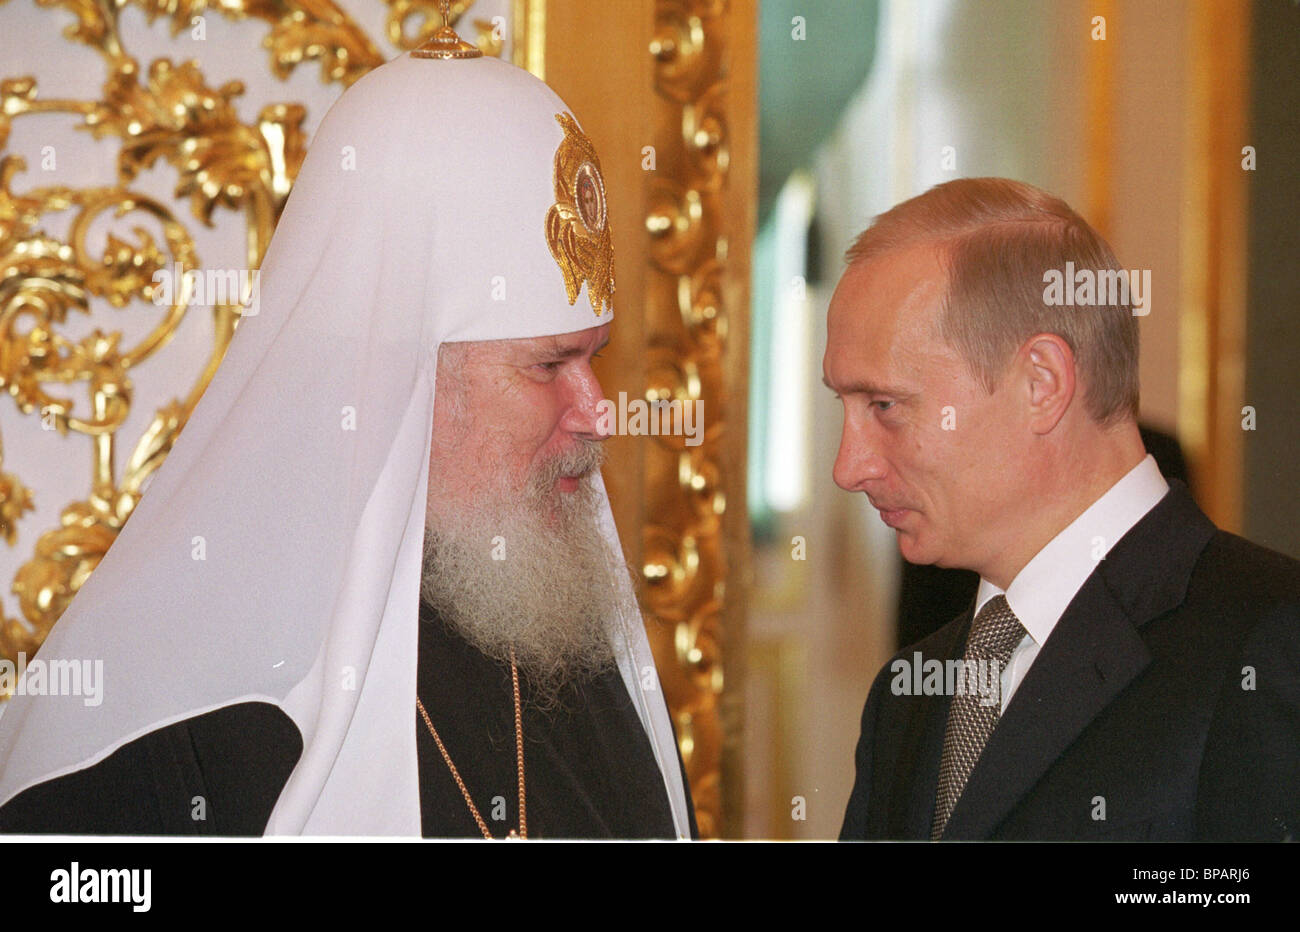 President Putin and Patriarch Alexy II at the state reception in the Kremlin. - Stock Image